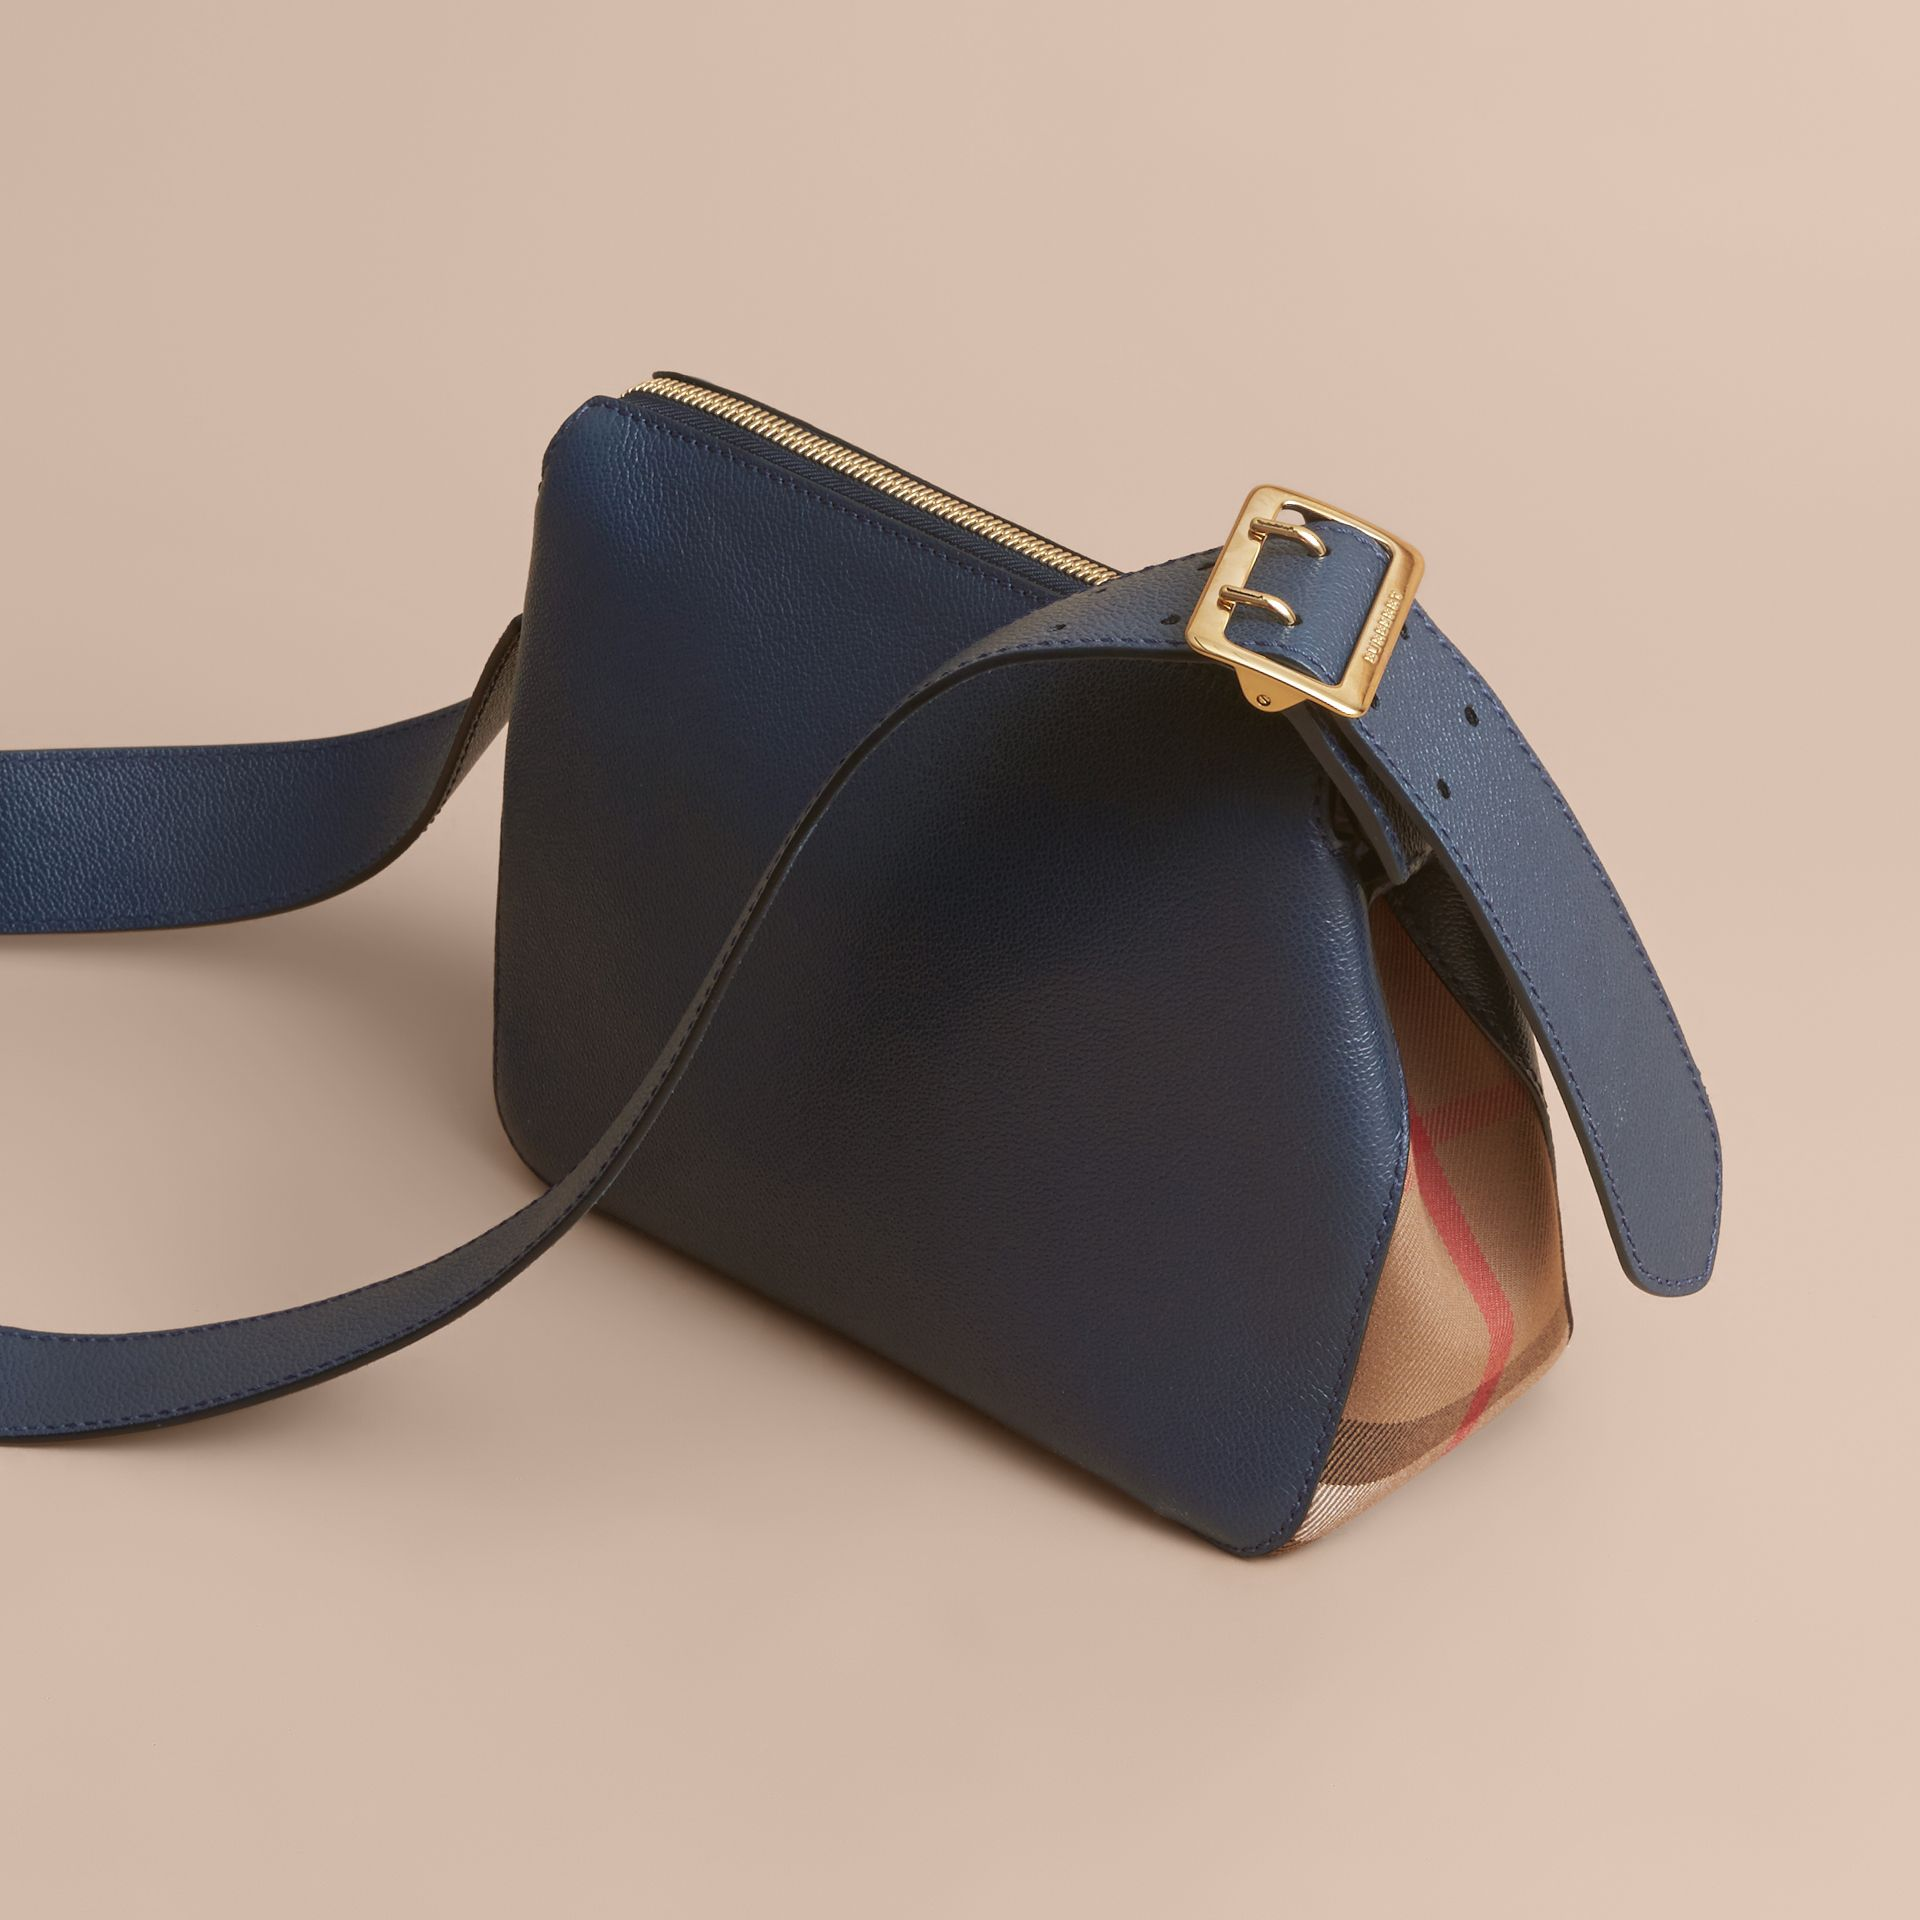 Buckle Detail Leather and House Check Crossbody Bag in Blue Carbon - Women | Burberry Australia - gallery image 4